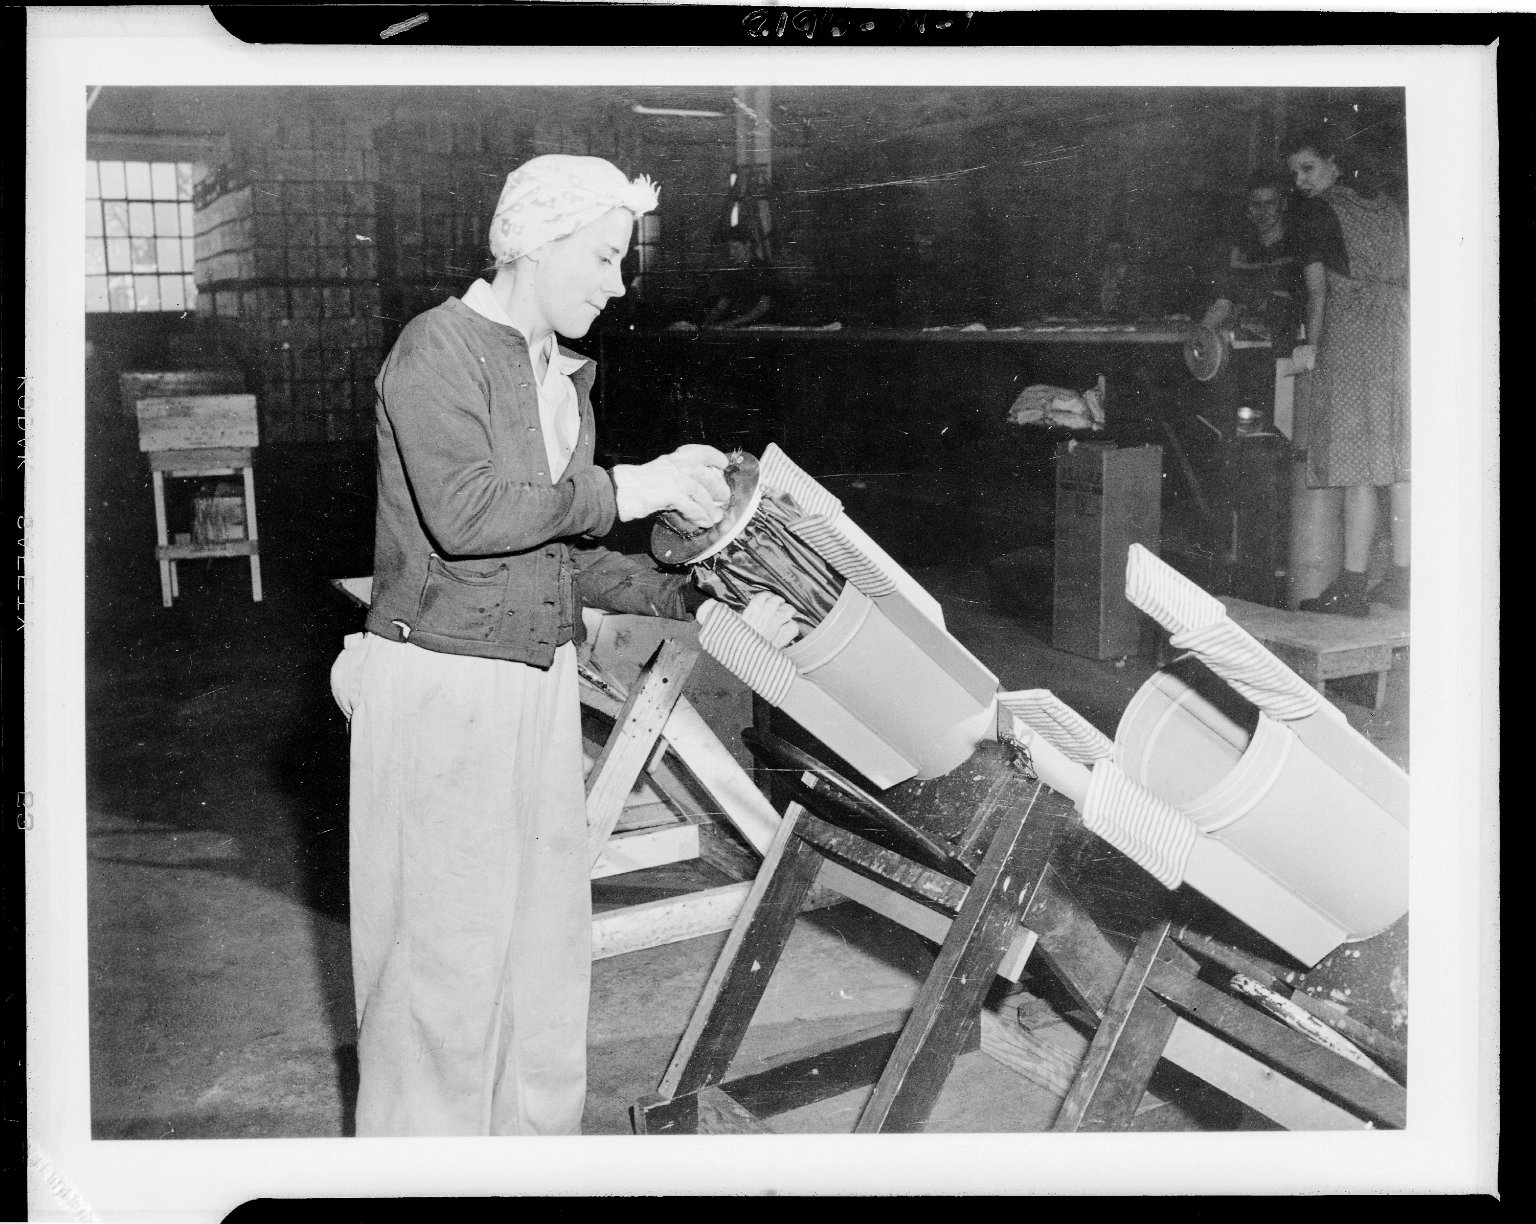 Kalamazoo Stove Company, worker packing parachute into cylinder